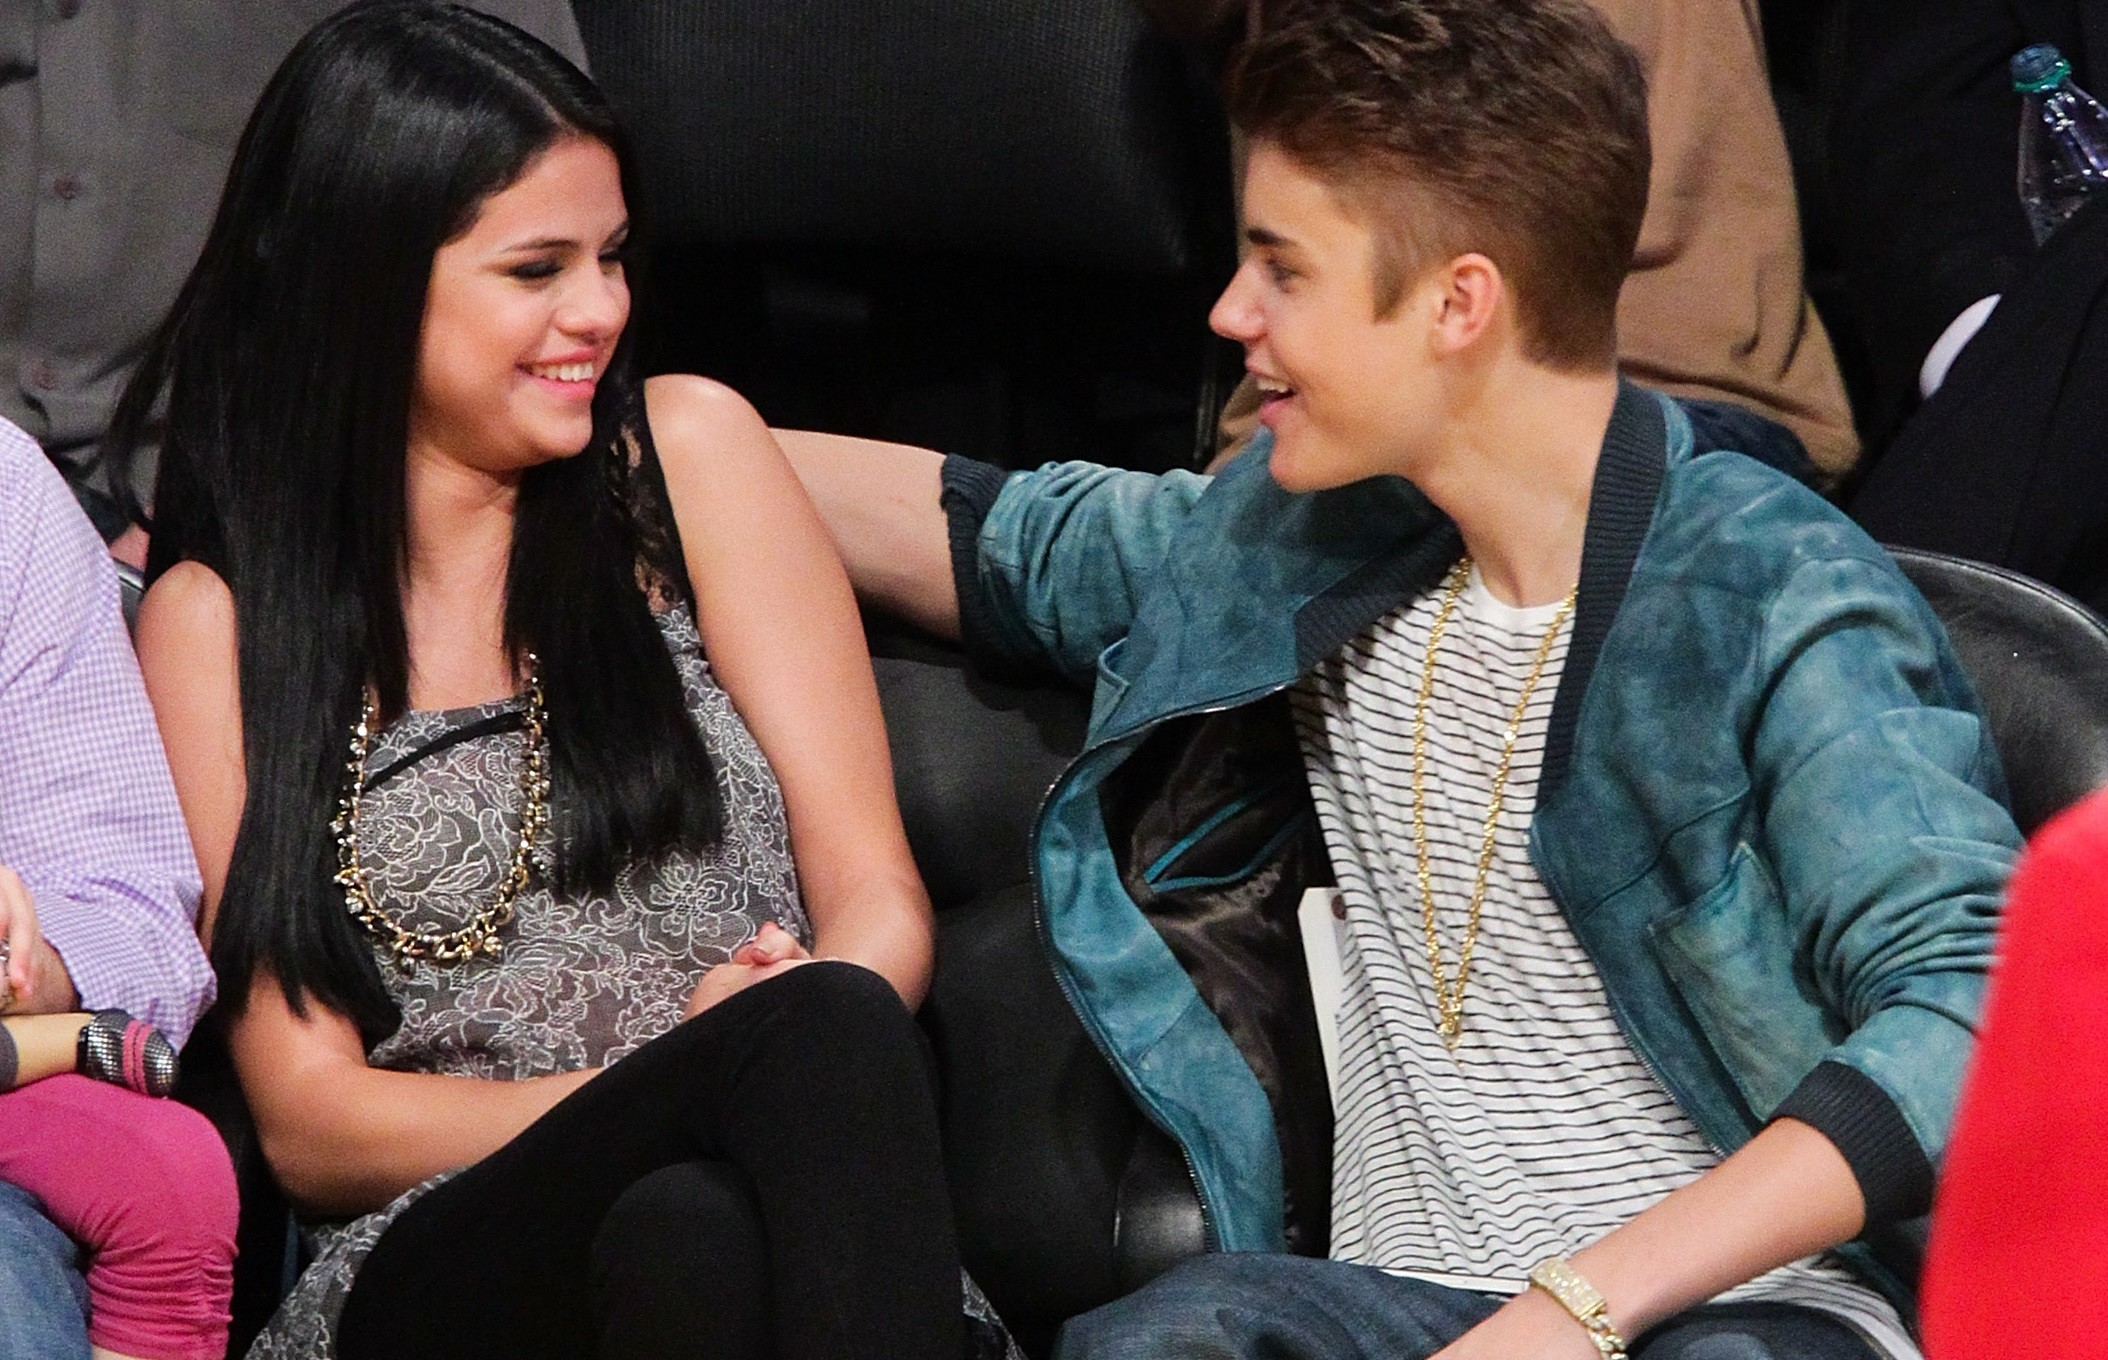 2108x1360 Lost Love photos of Justin Bieber and Selena Gomez so Cute